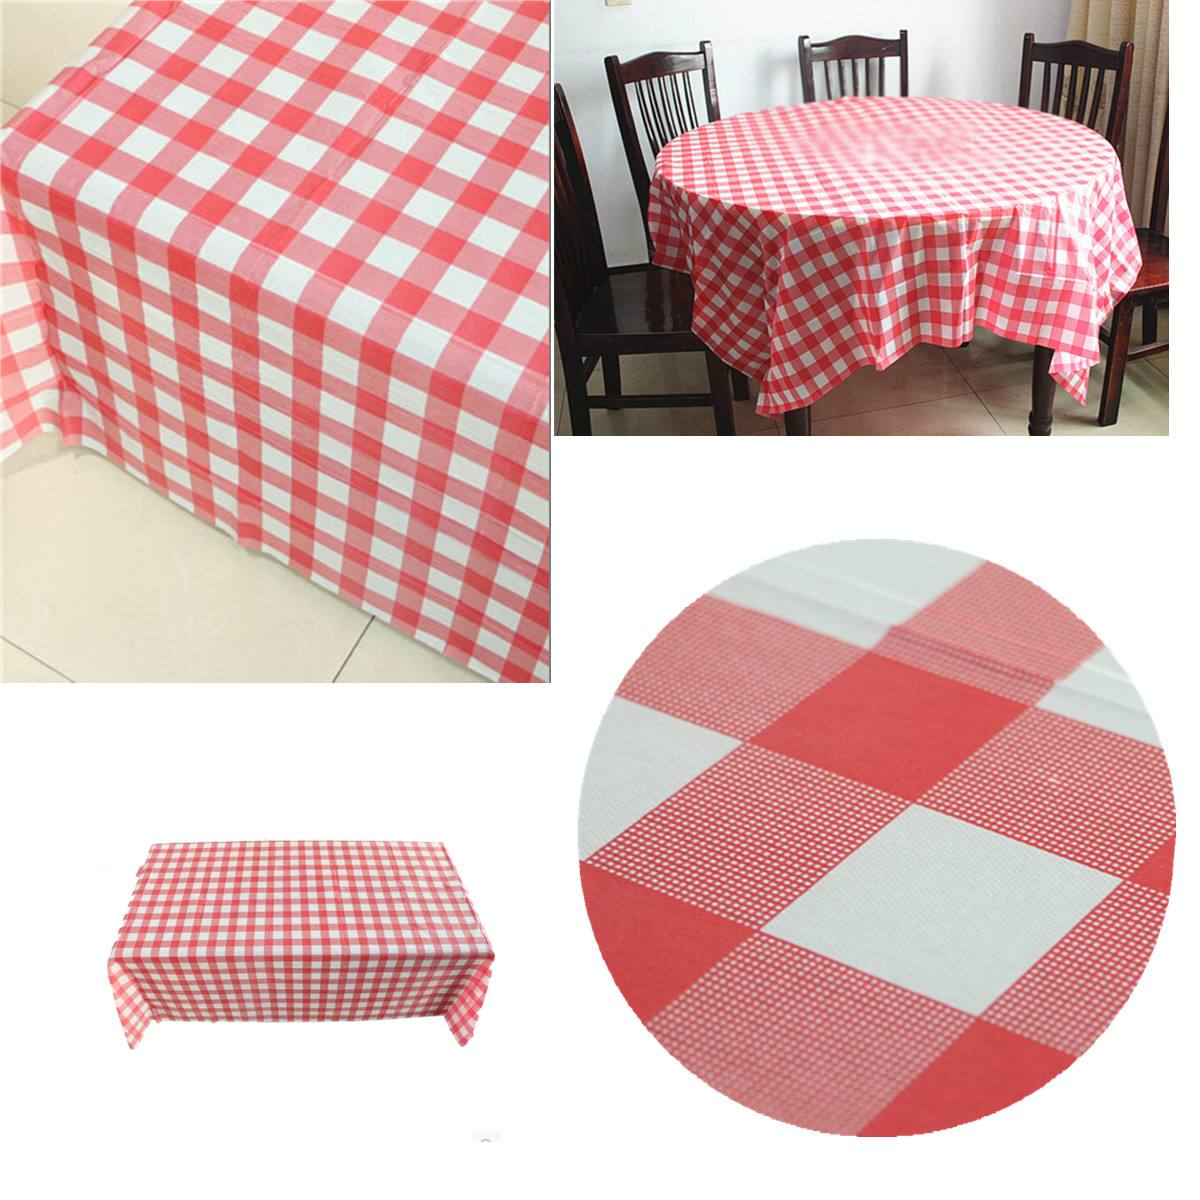 Cool Us 1 27 57 Off Red Gingham Plastic Disposable Check Tablecloth Tablecover Party Outdoor Picnic 160X160Cm Used For Tablecloths Chair Covers In Andrewgaddart Wooden Chair Designs For Living Room Andrewgaddartcom